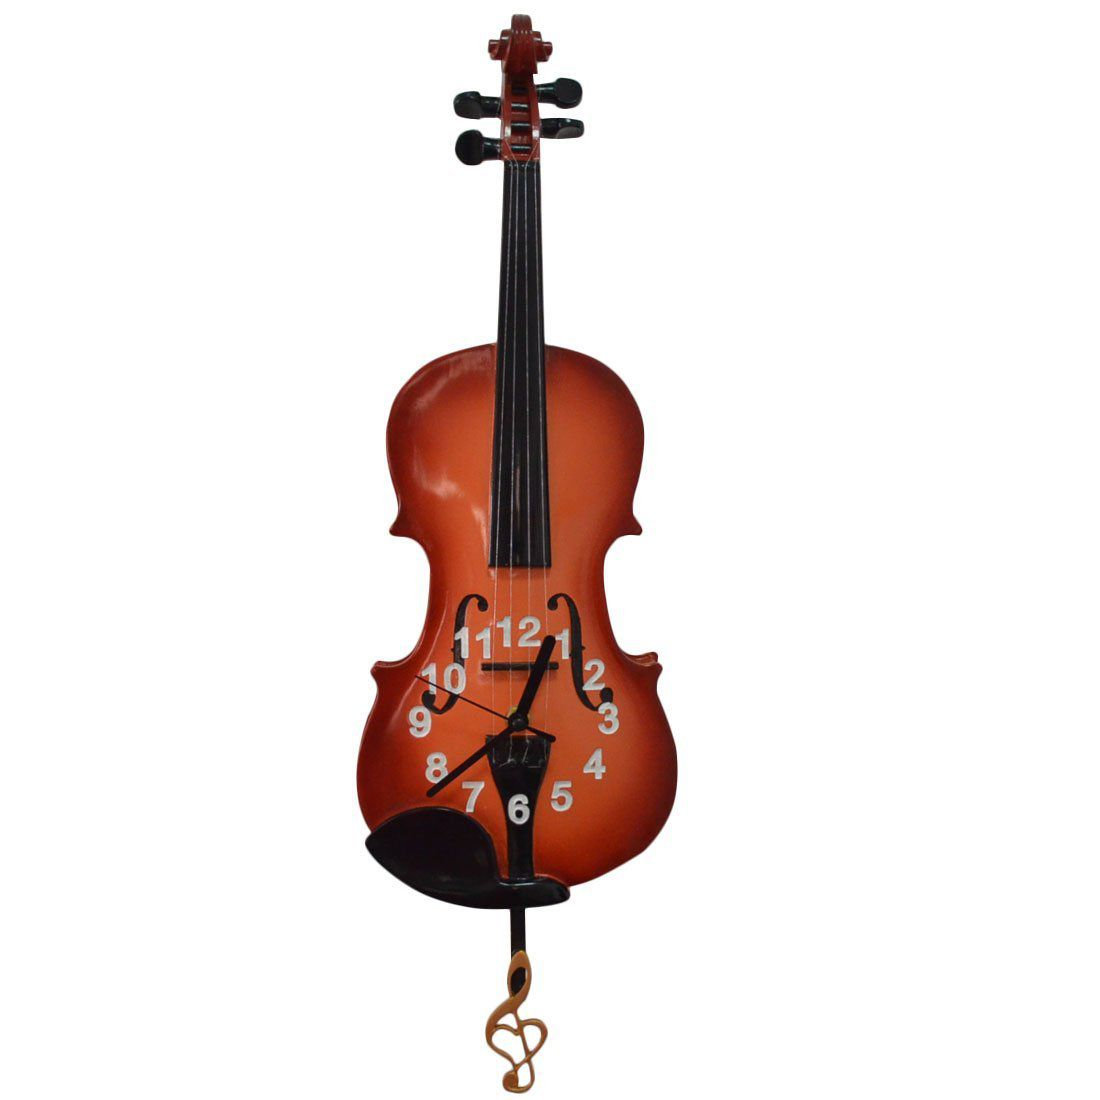 Giftgarden Violin Decor Wall Clocks Musical Gift for Home Decoration